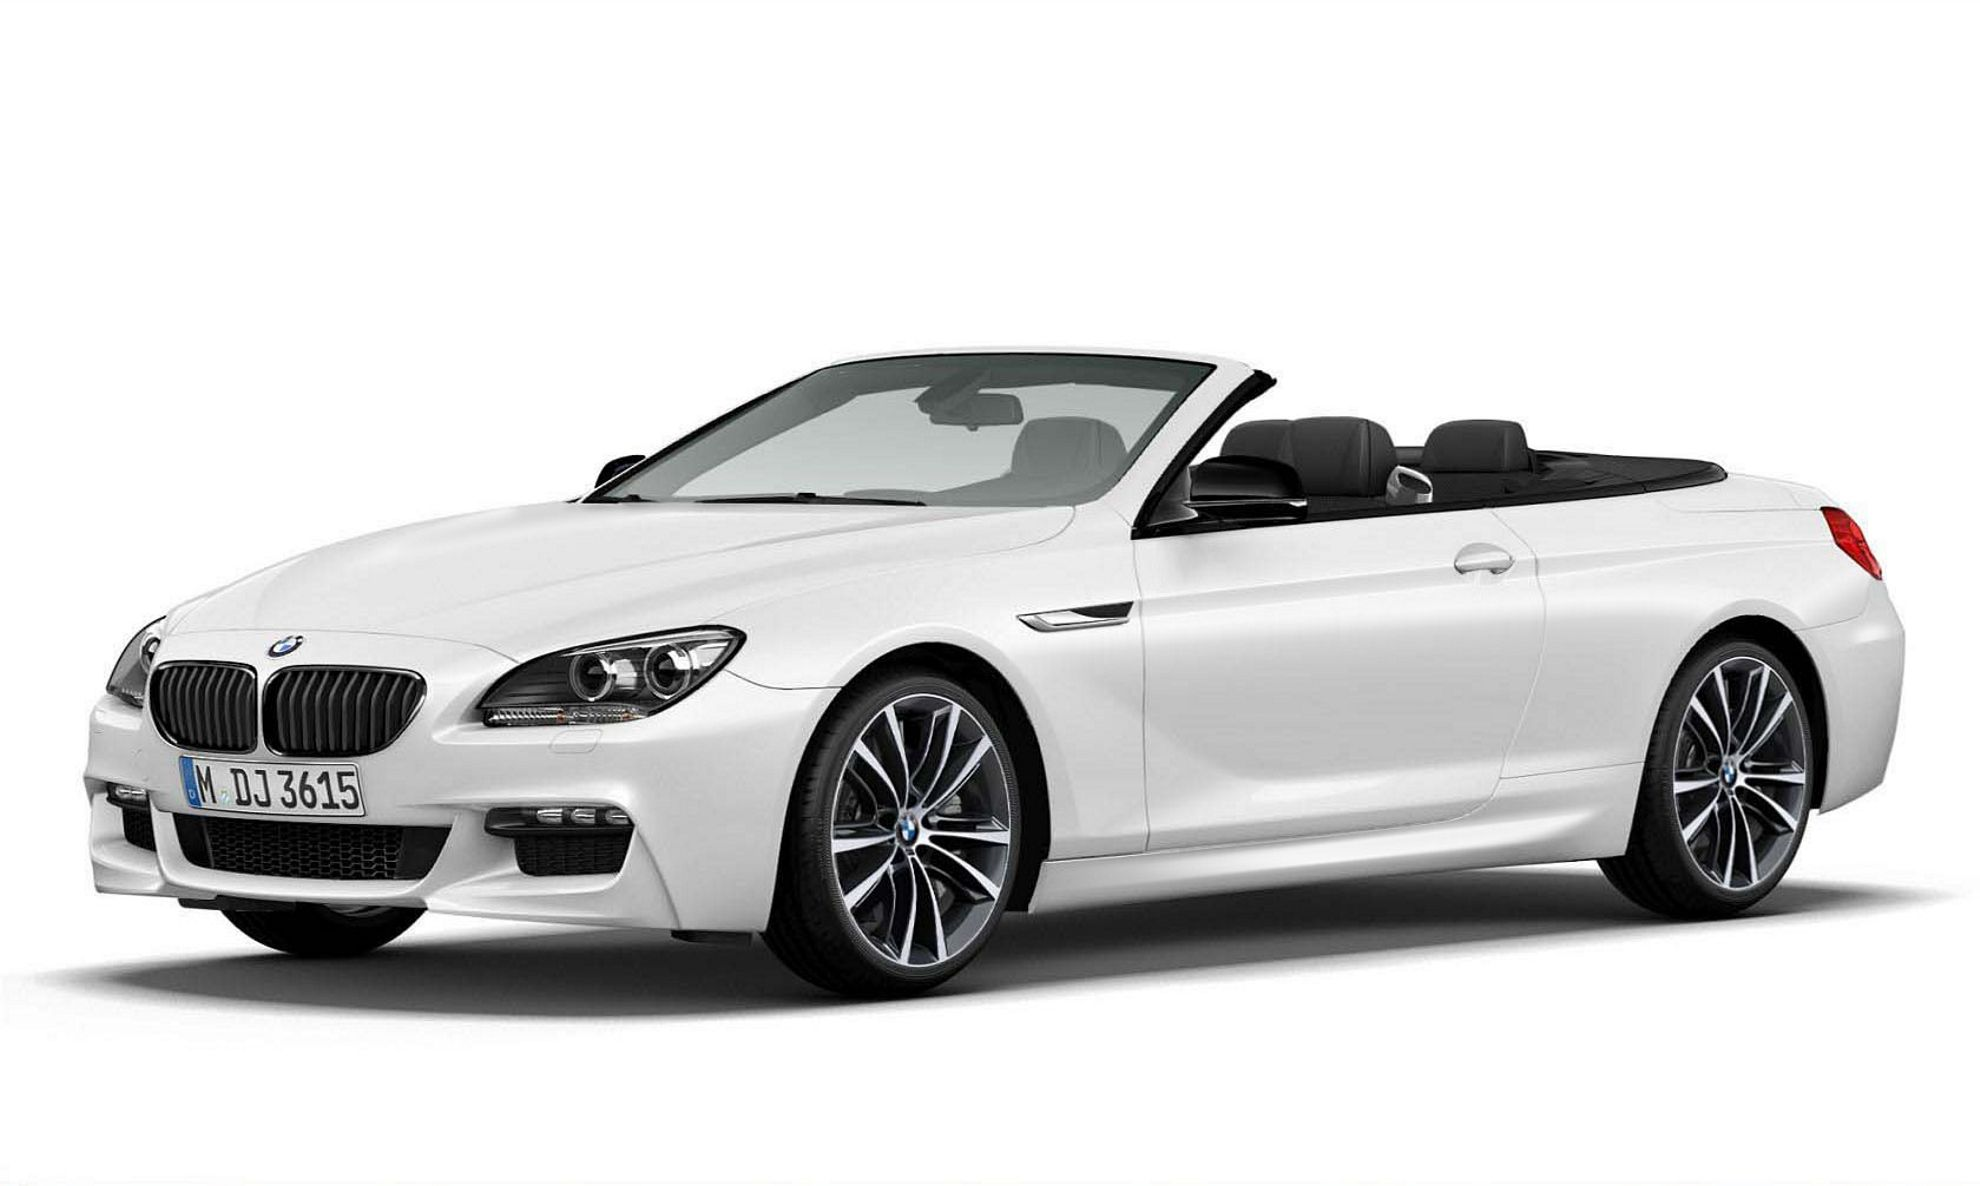 The BMW 6 Series Coupe, Convertible, And Gran Coupe Models Will Enter The  2014 Model Year With A Stronger Line Up Than Ever, Thanks To New  Enhancements And ...